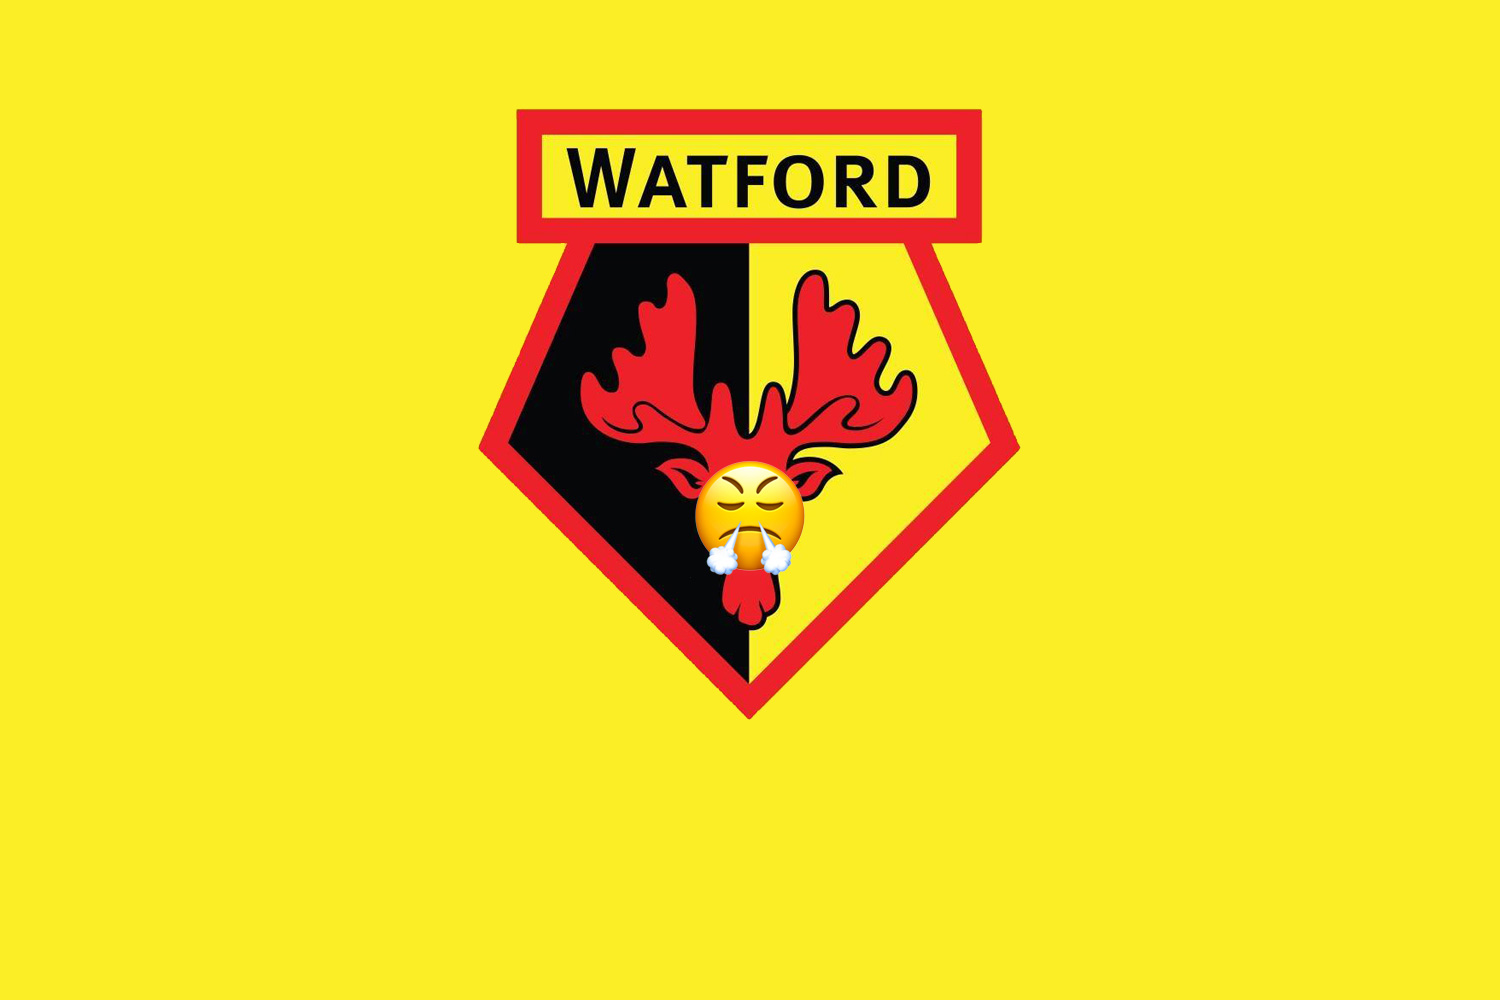 Follow-up: Watford FC Crest Contest